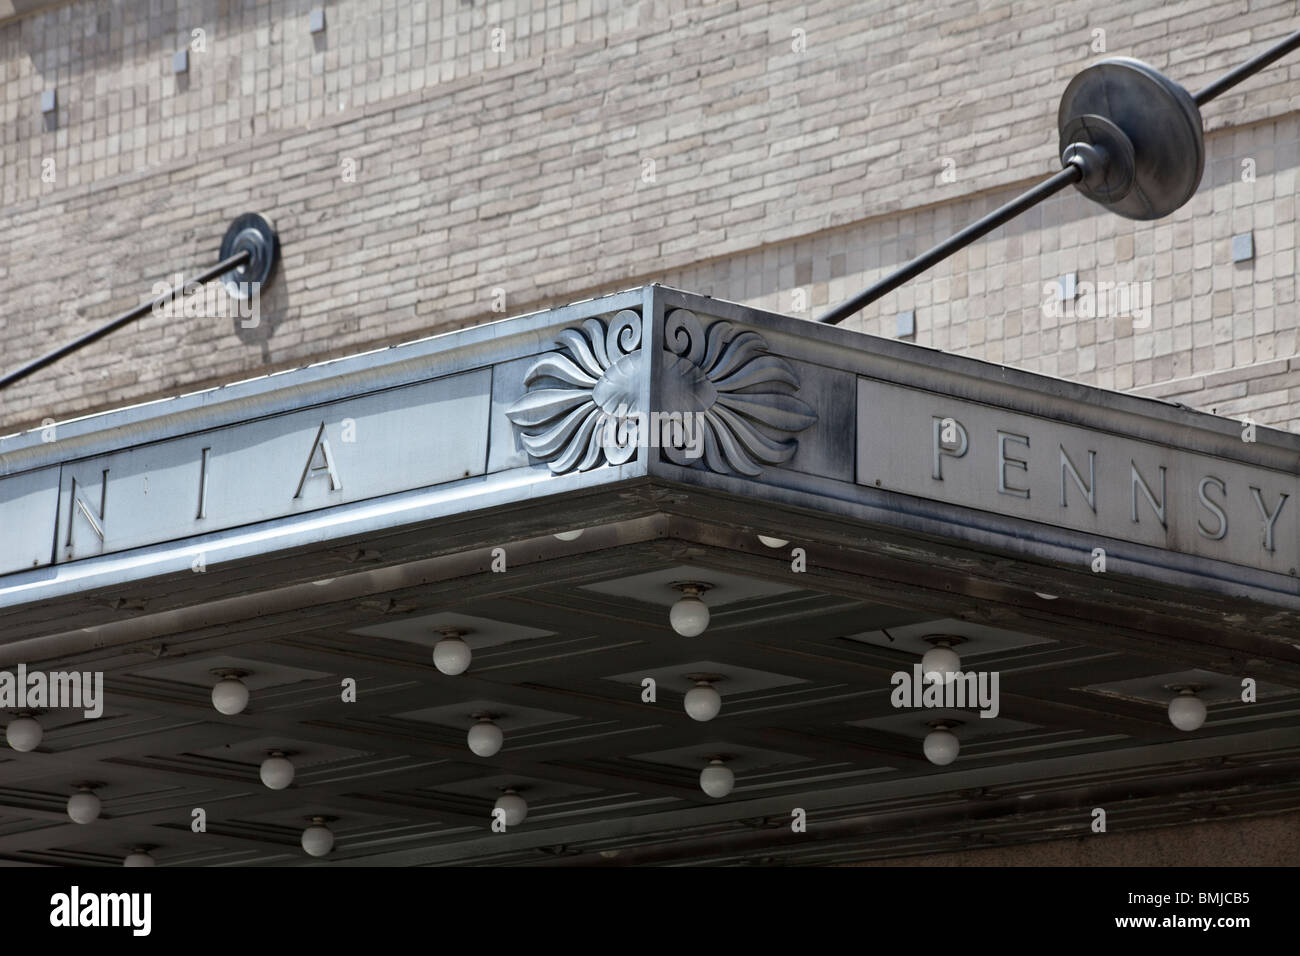 detail of awning of Pennsylvania Station in Newark, New Jersey (also known as Newark Penn Station) - Stock Image